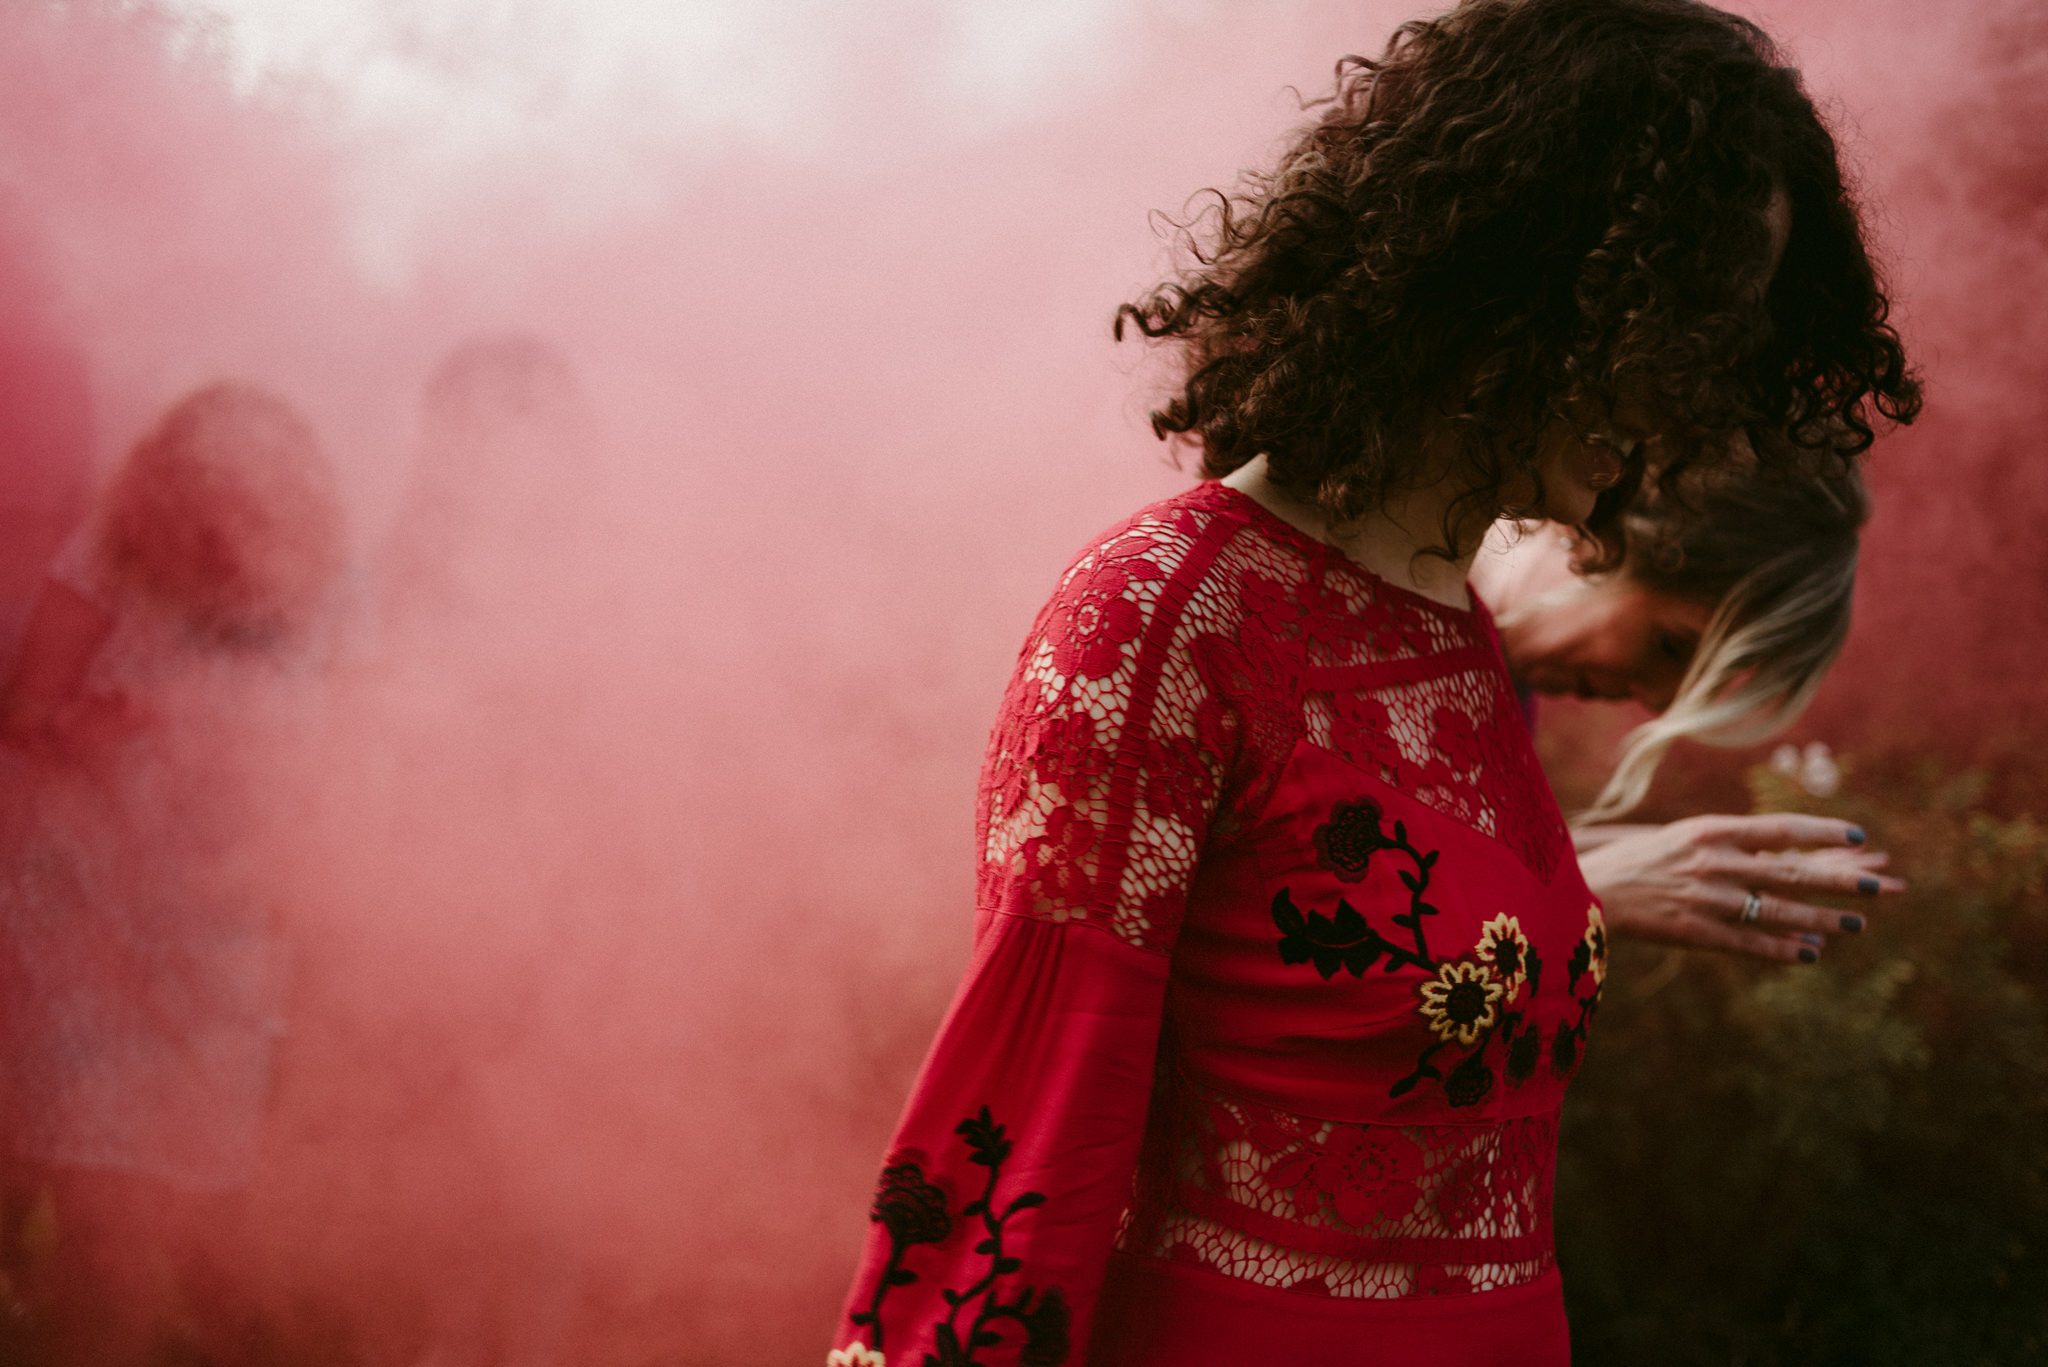 guest running through red smoke bomb at wedding reception